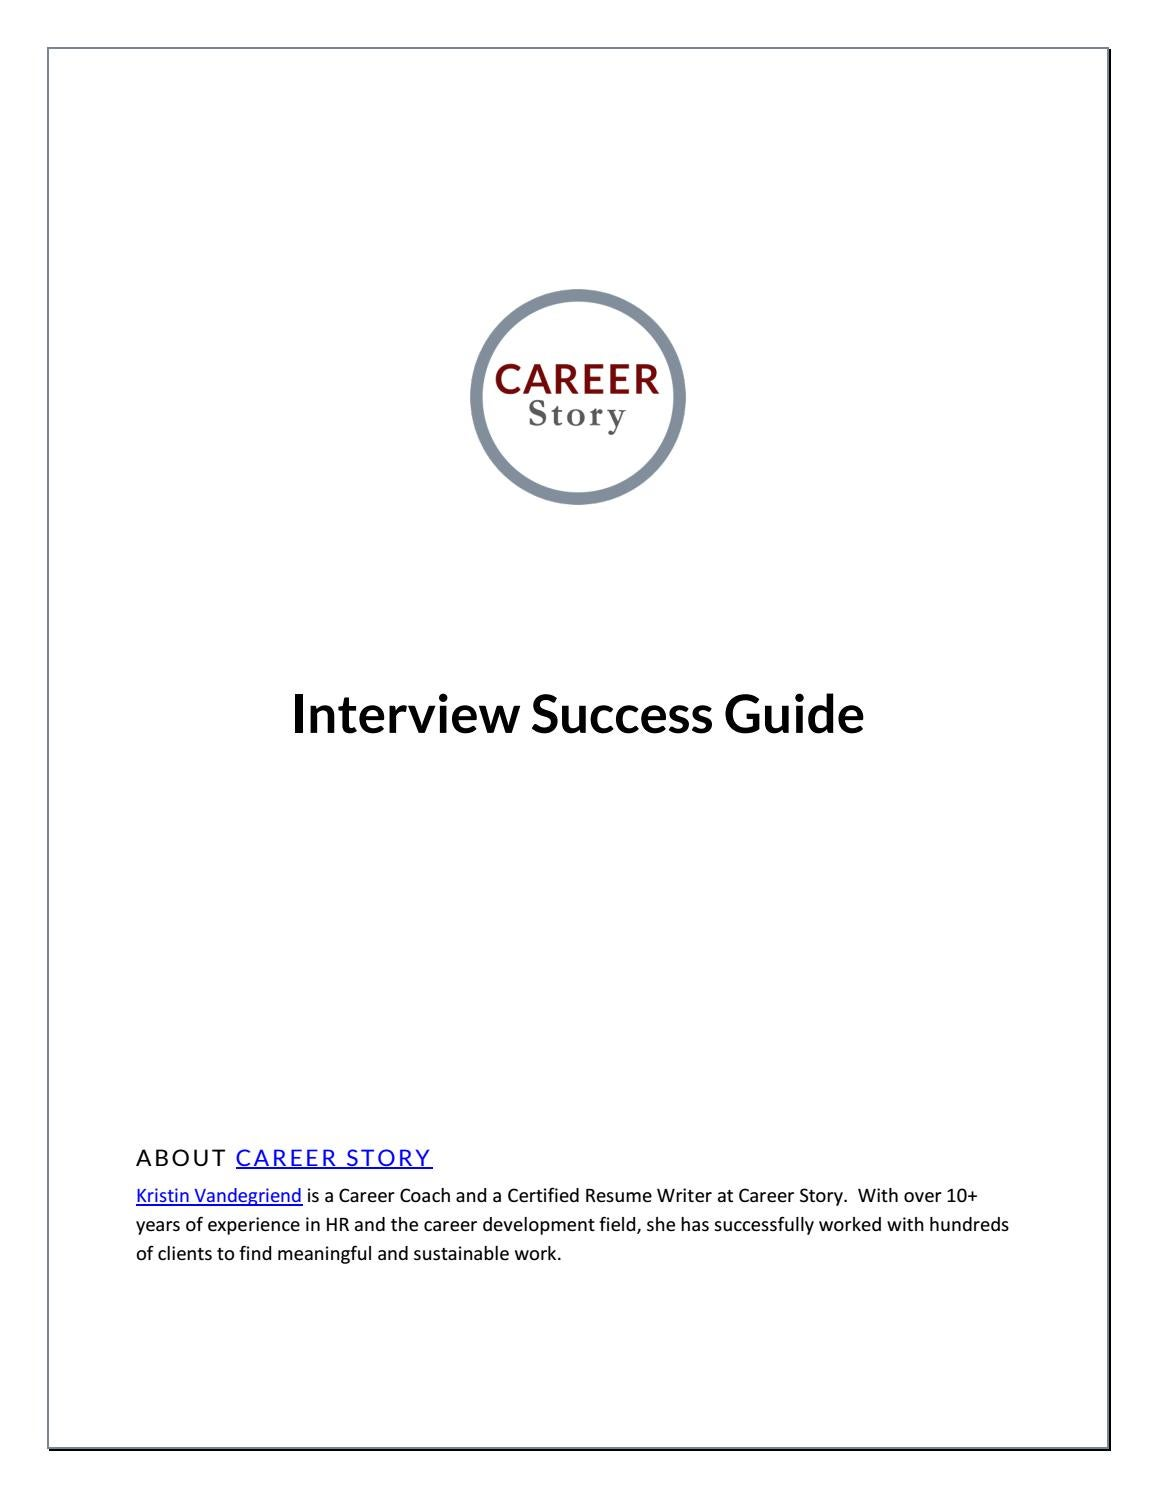 interview resources and tips career story career story interview success guid 8 months ago careerstory